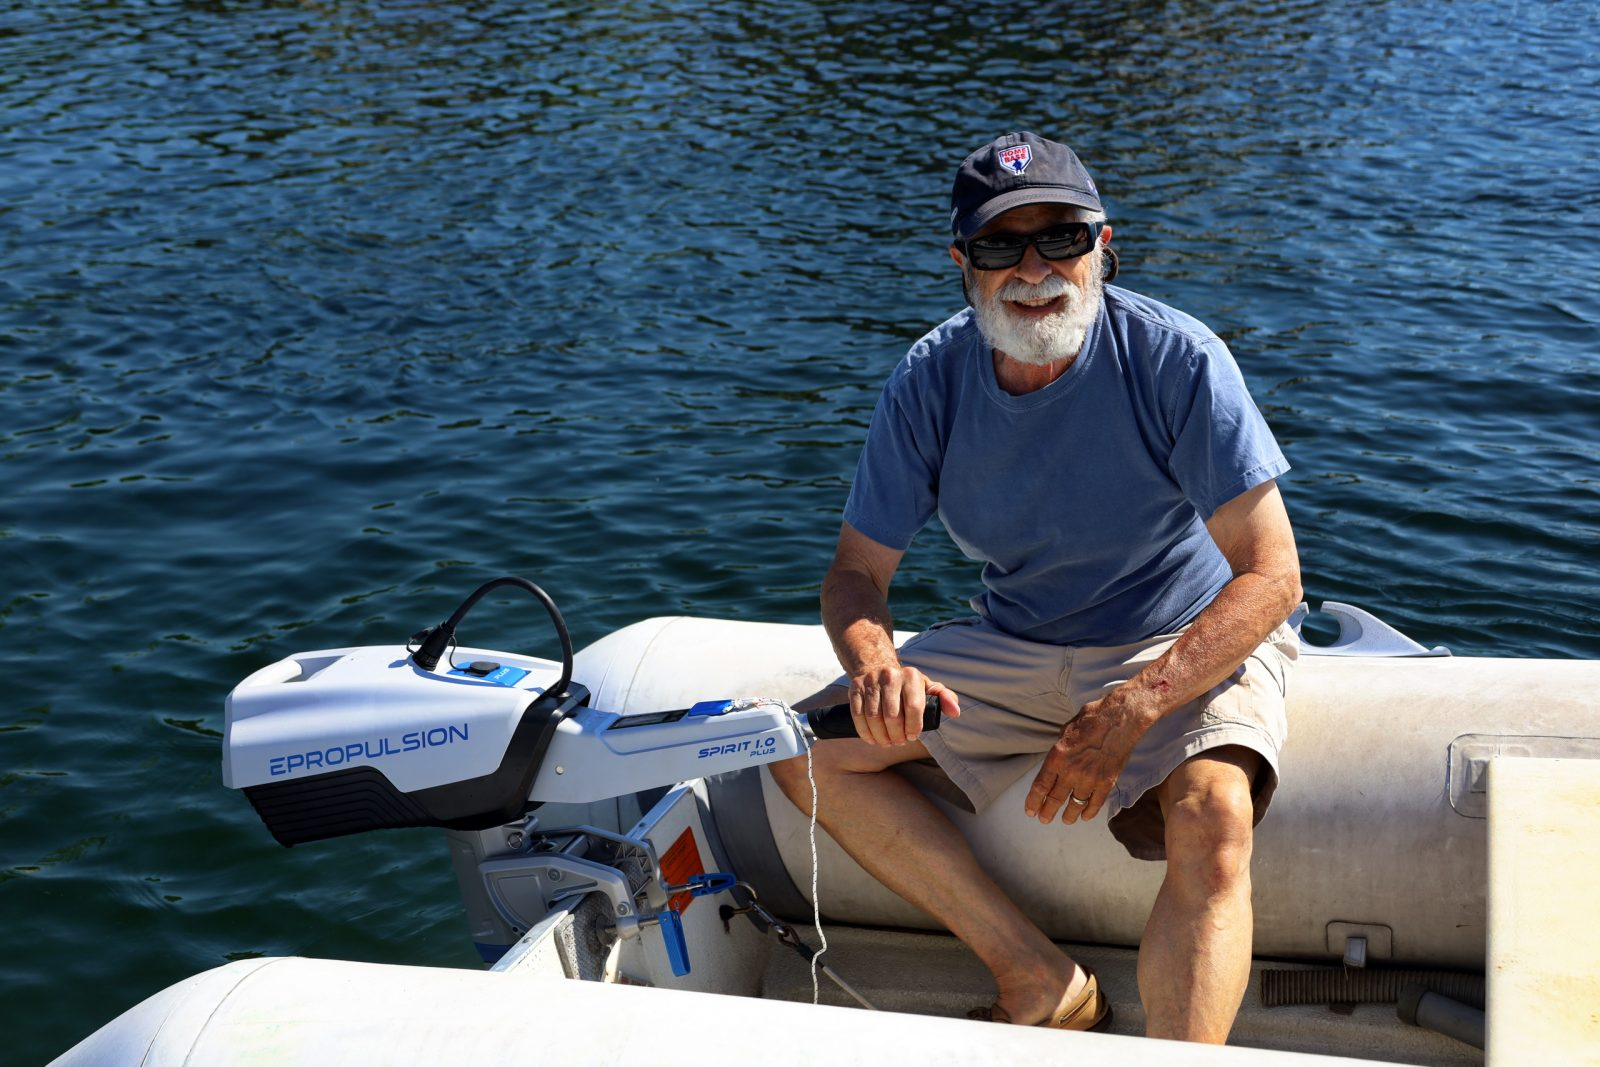 Capt. Richard Itkin is still happy with his Spirit 1.0 Plus four months later